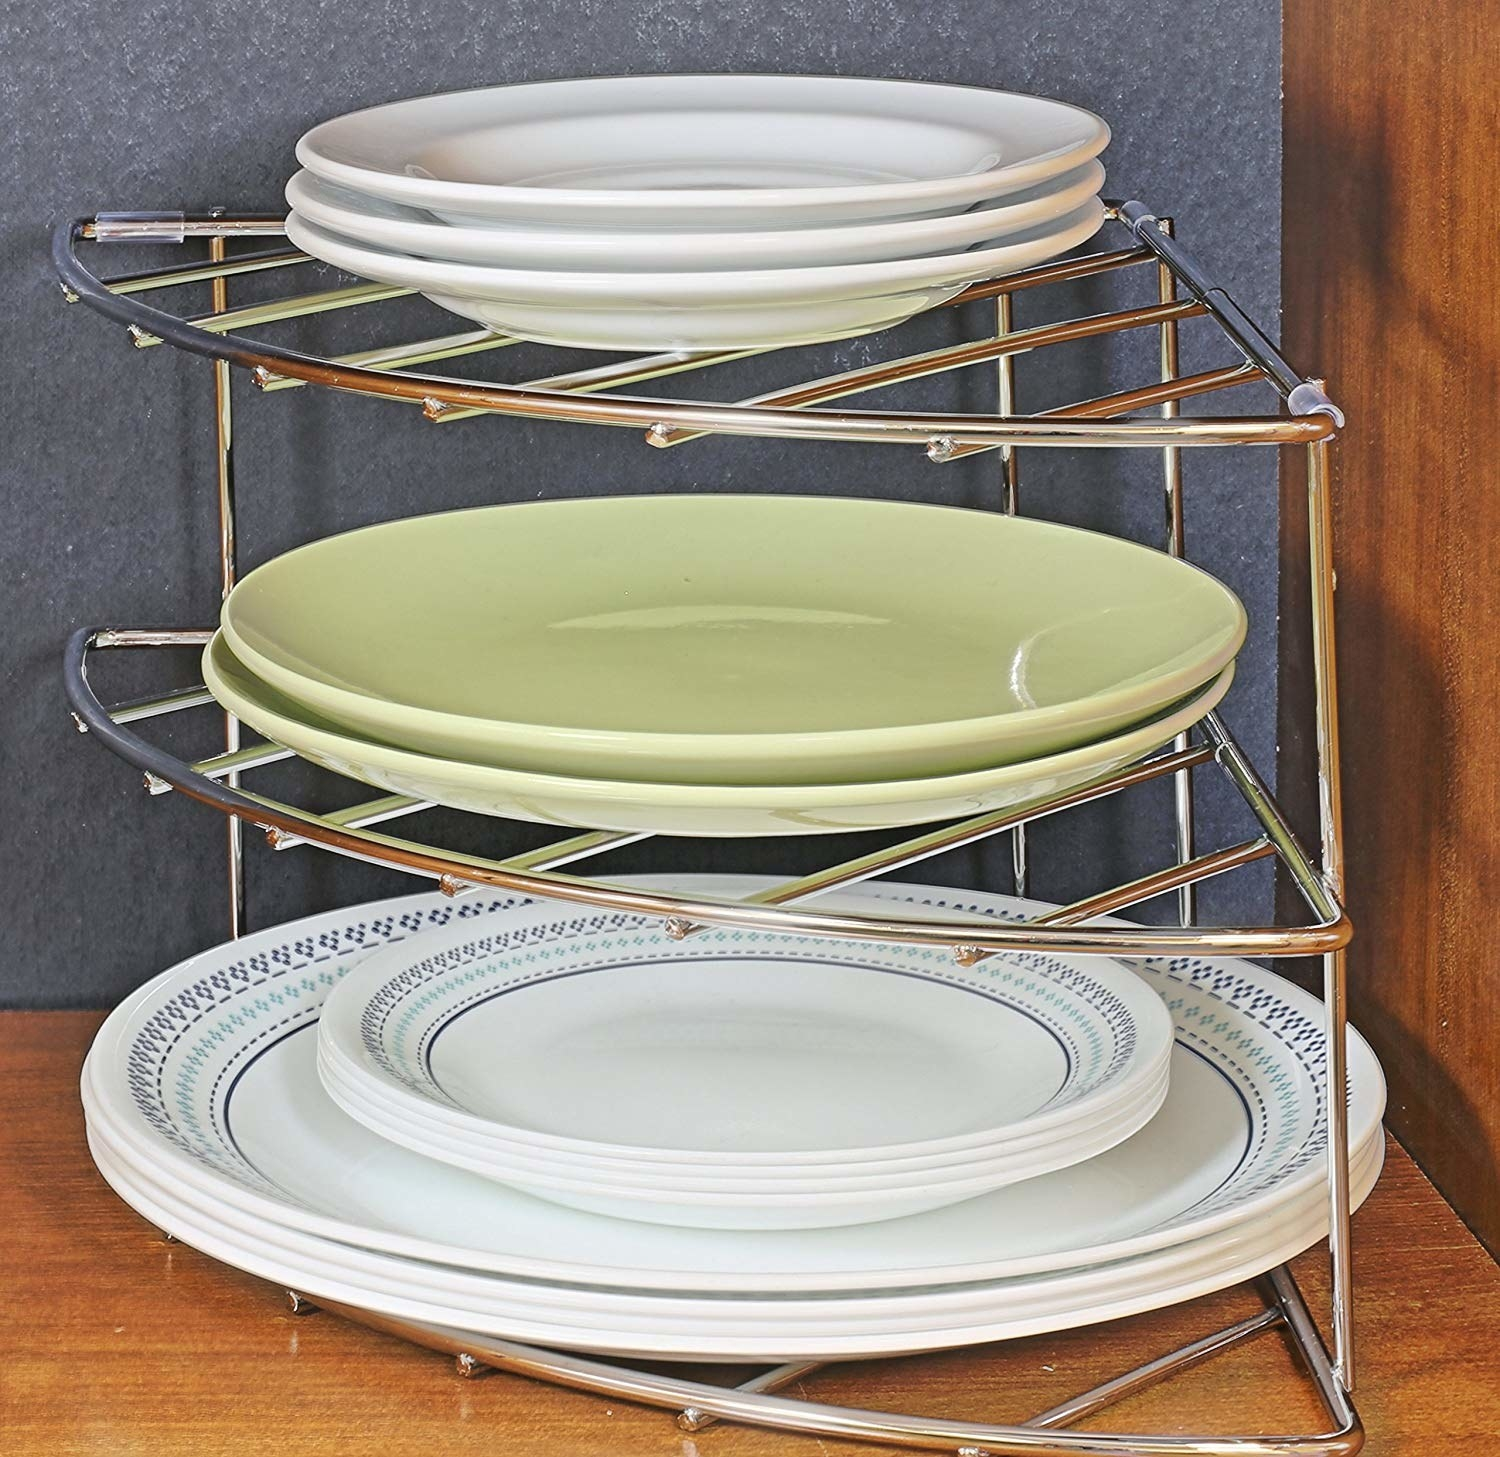 The shelf organizer filled with plates